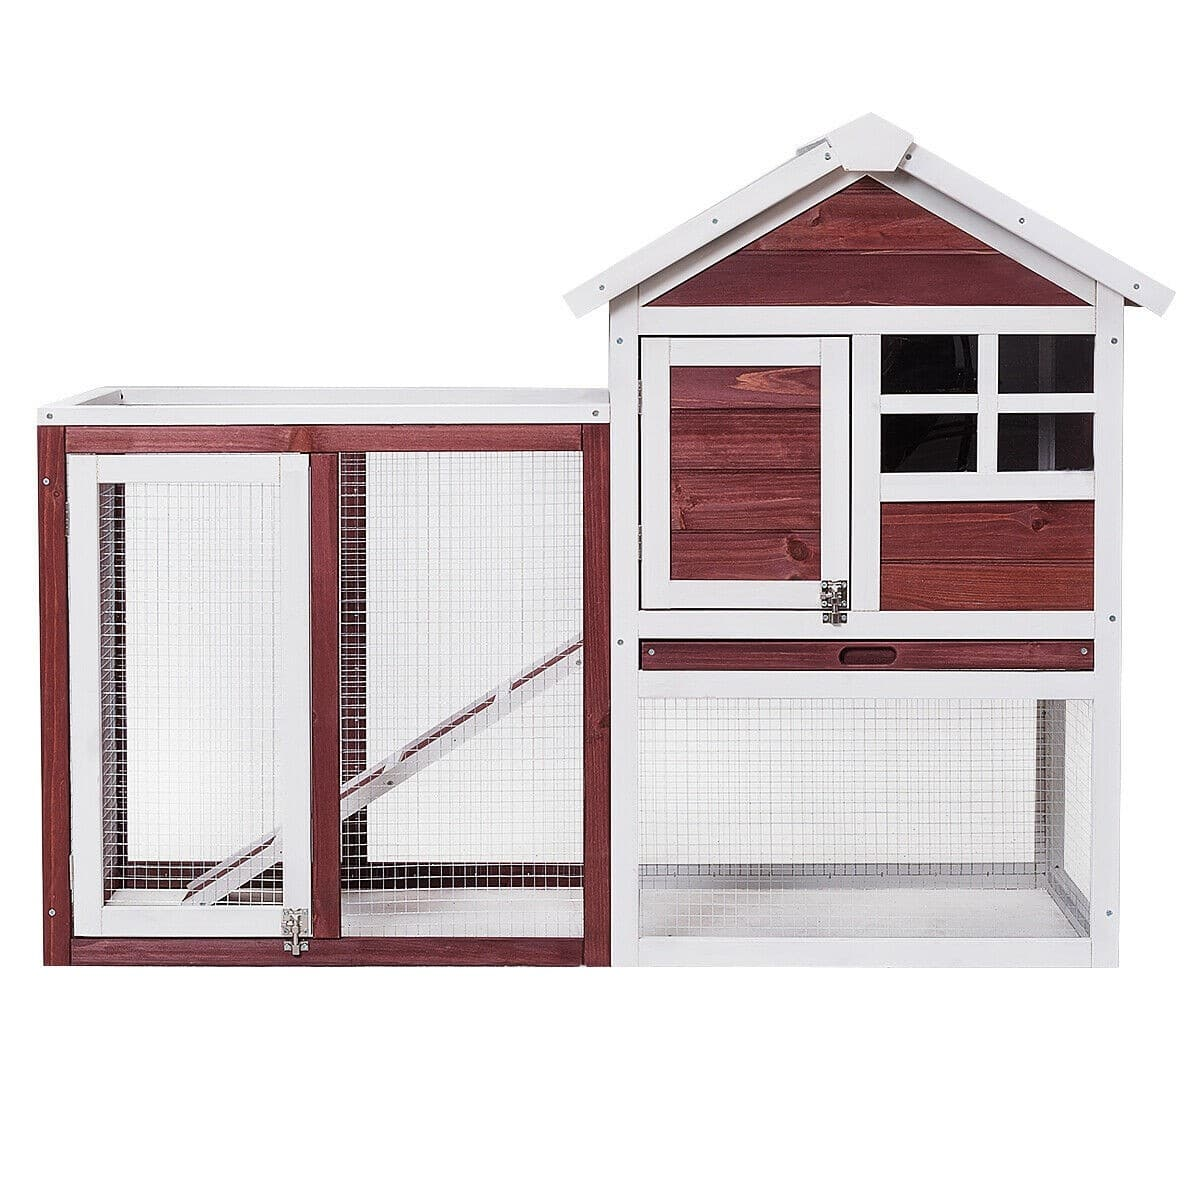 Wooden Rabbit Hutch Poultry Cage - $110.95 + Free Shipping ***DJ3 Posted